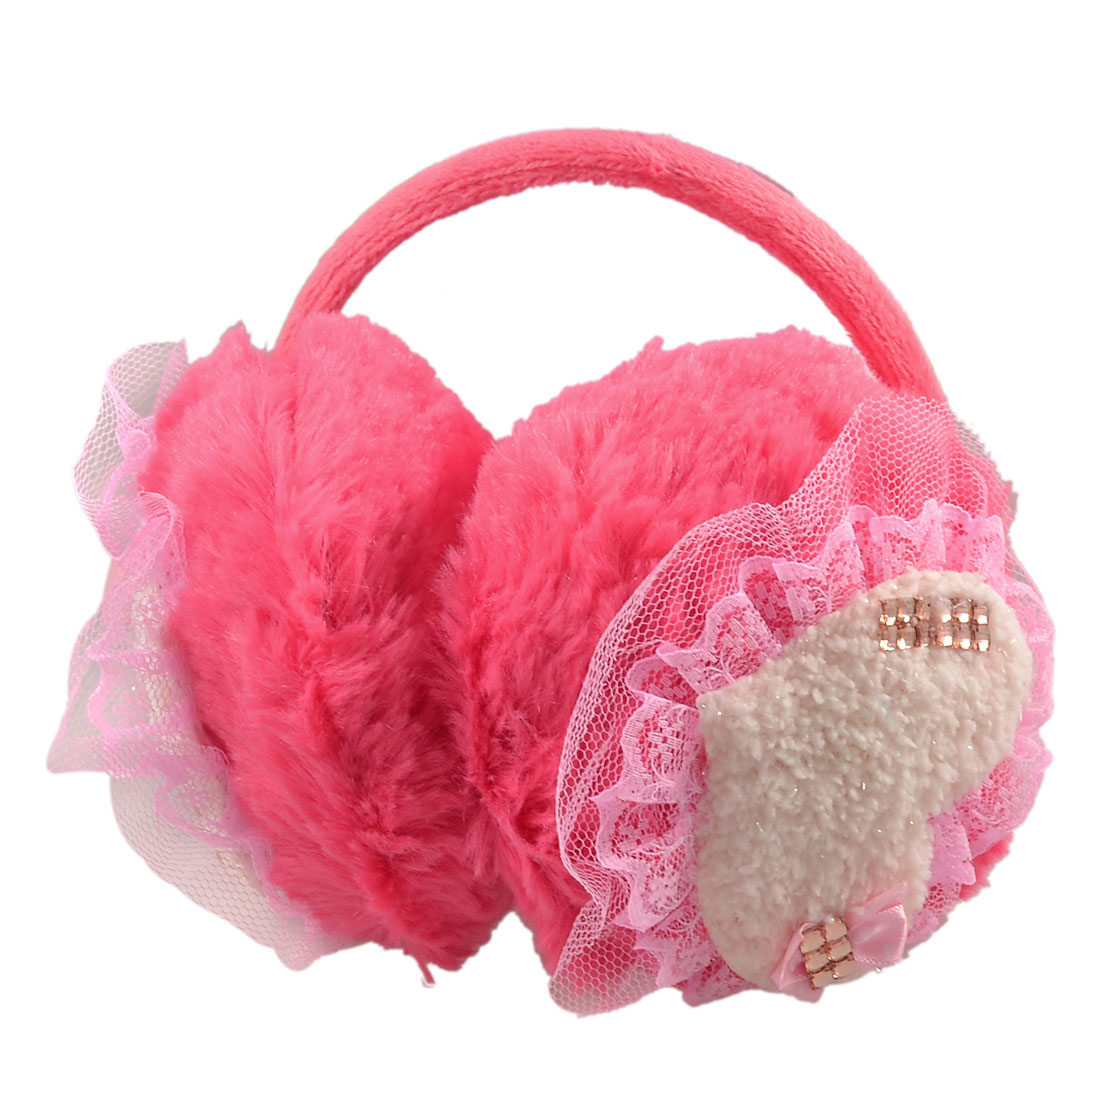 Lady Crystal Lace Heart Plush Fluffy Watermelon Red Ear Cover Back Earmuffs